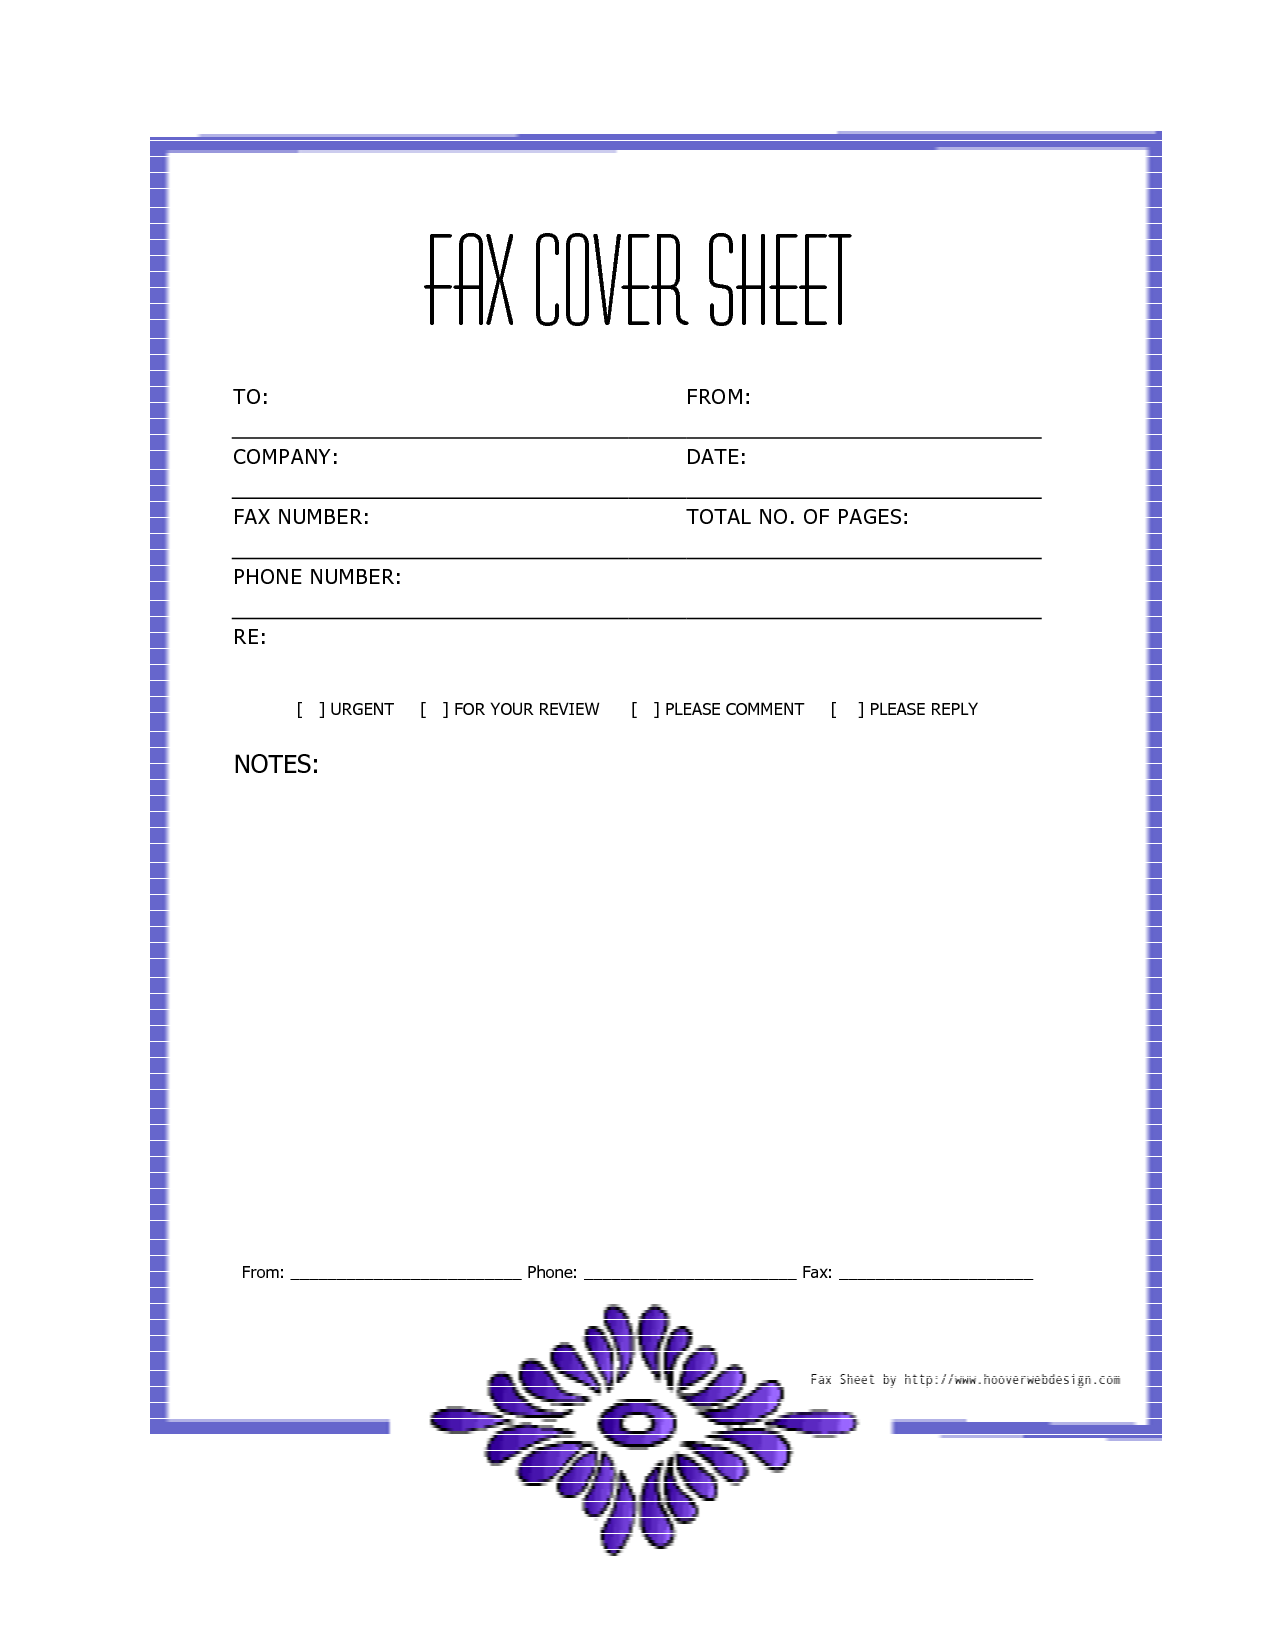 Free Downloads Fax Covers Sheets | Free Printable Fax Cover Sheet Template  Elegant   Download As  Free Cover Fax Sheet